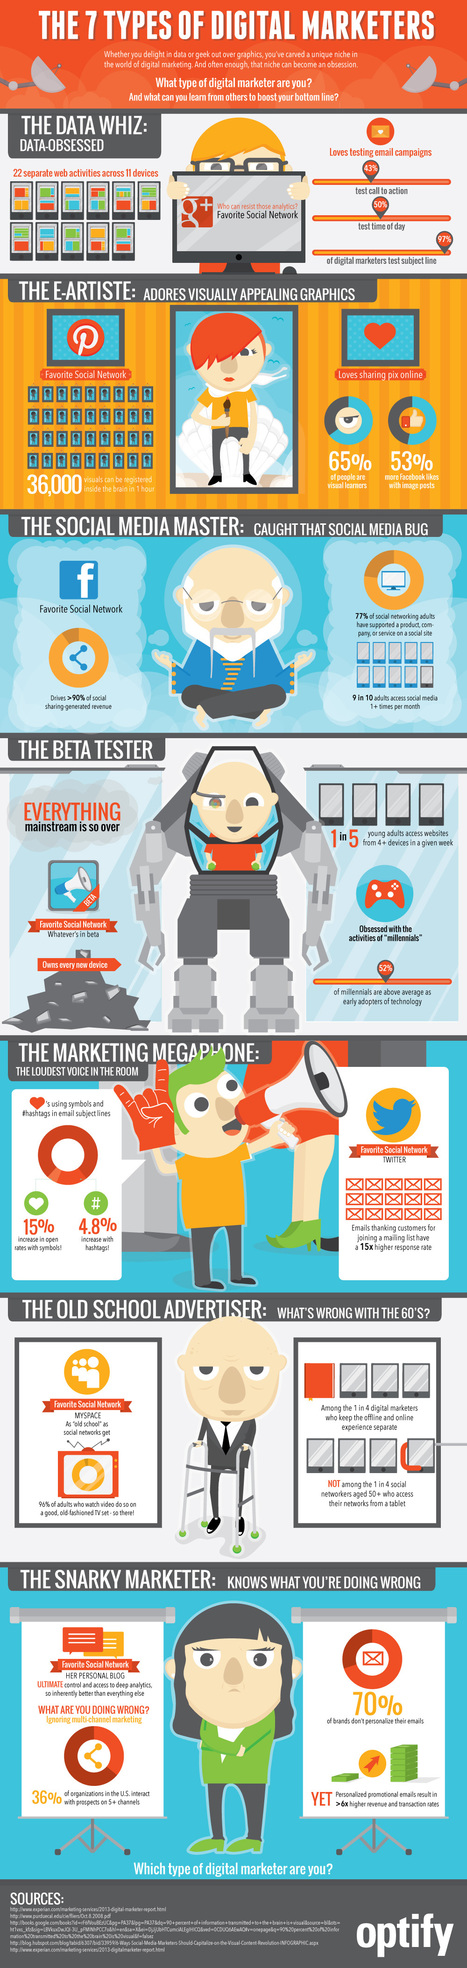 7 Types Of Digital Marketers: Modern Marketing Humor [Infographic] - Bit Rebels | Branded Entertainment | Scoop.it